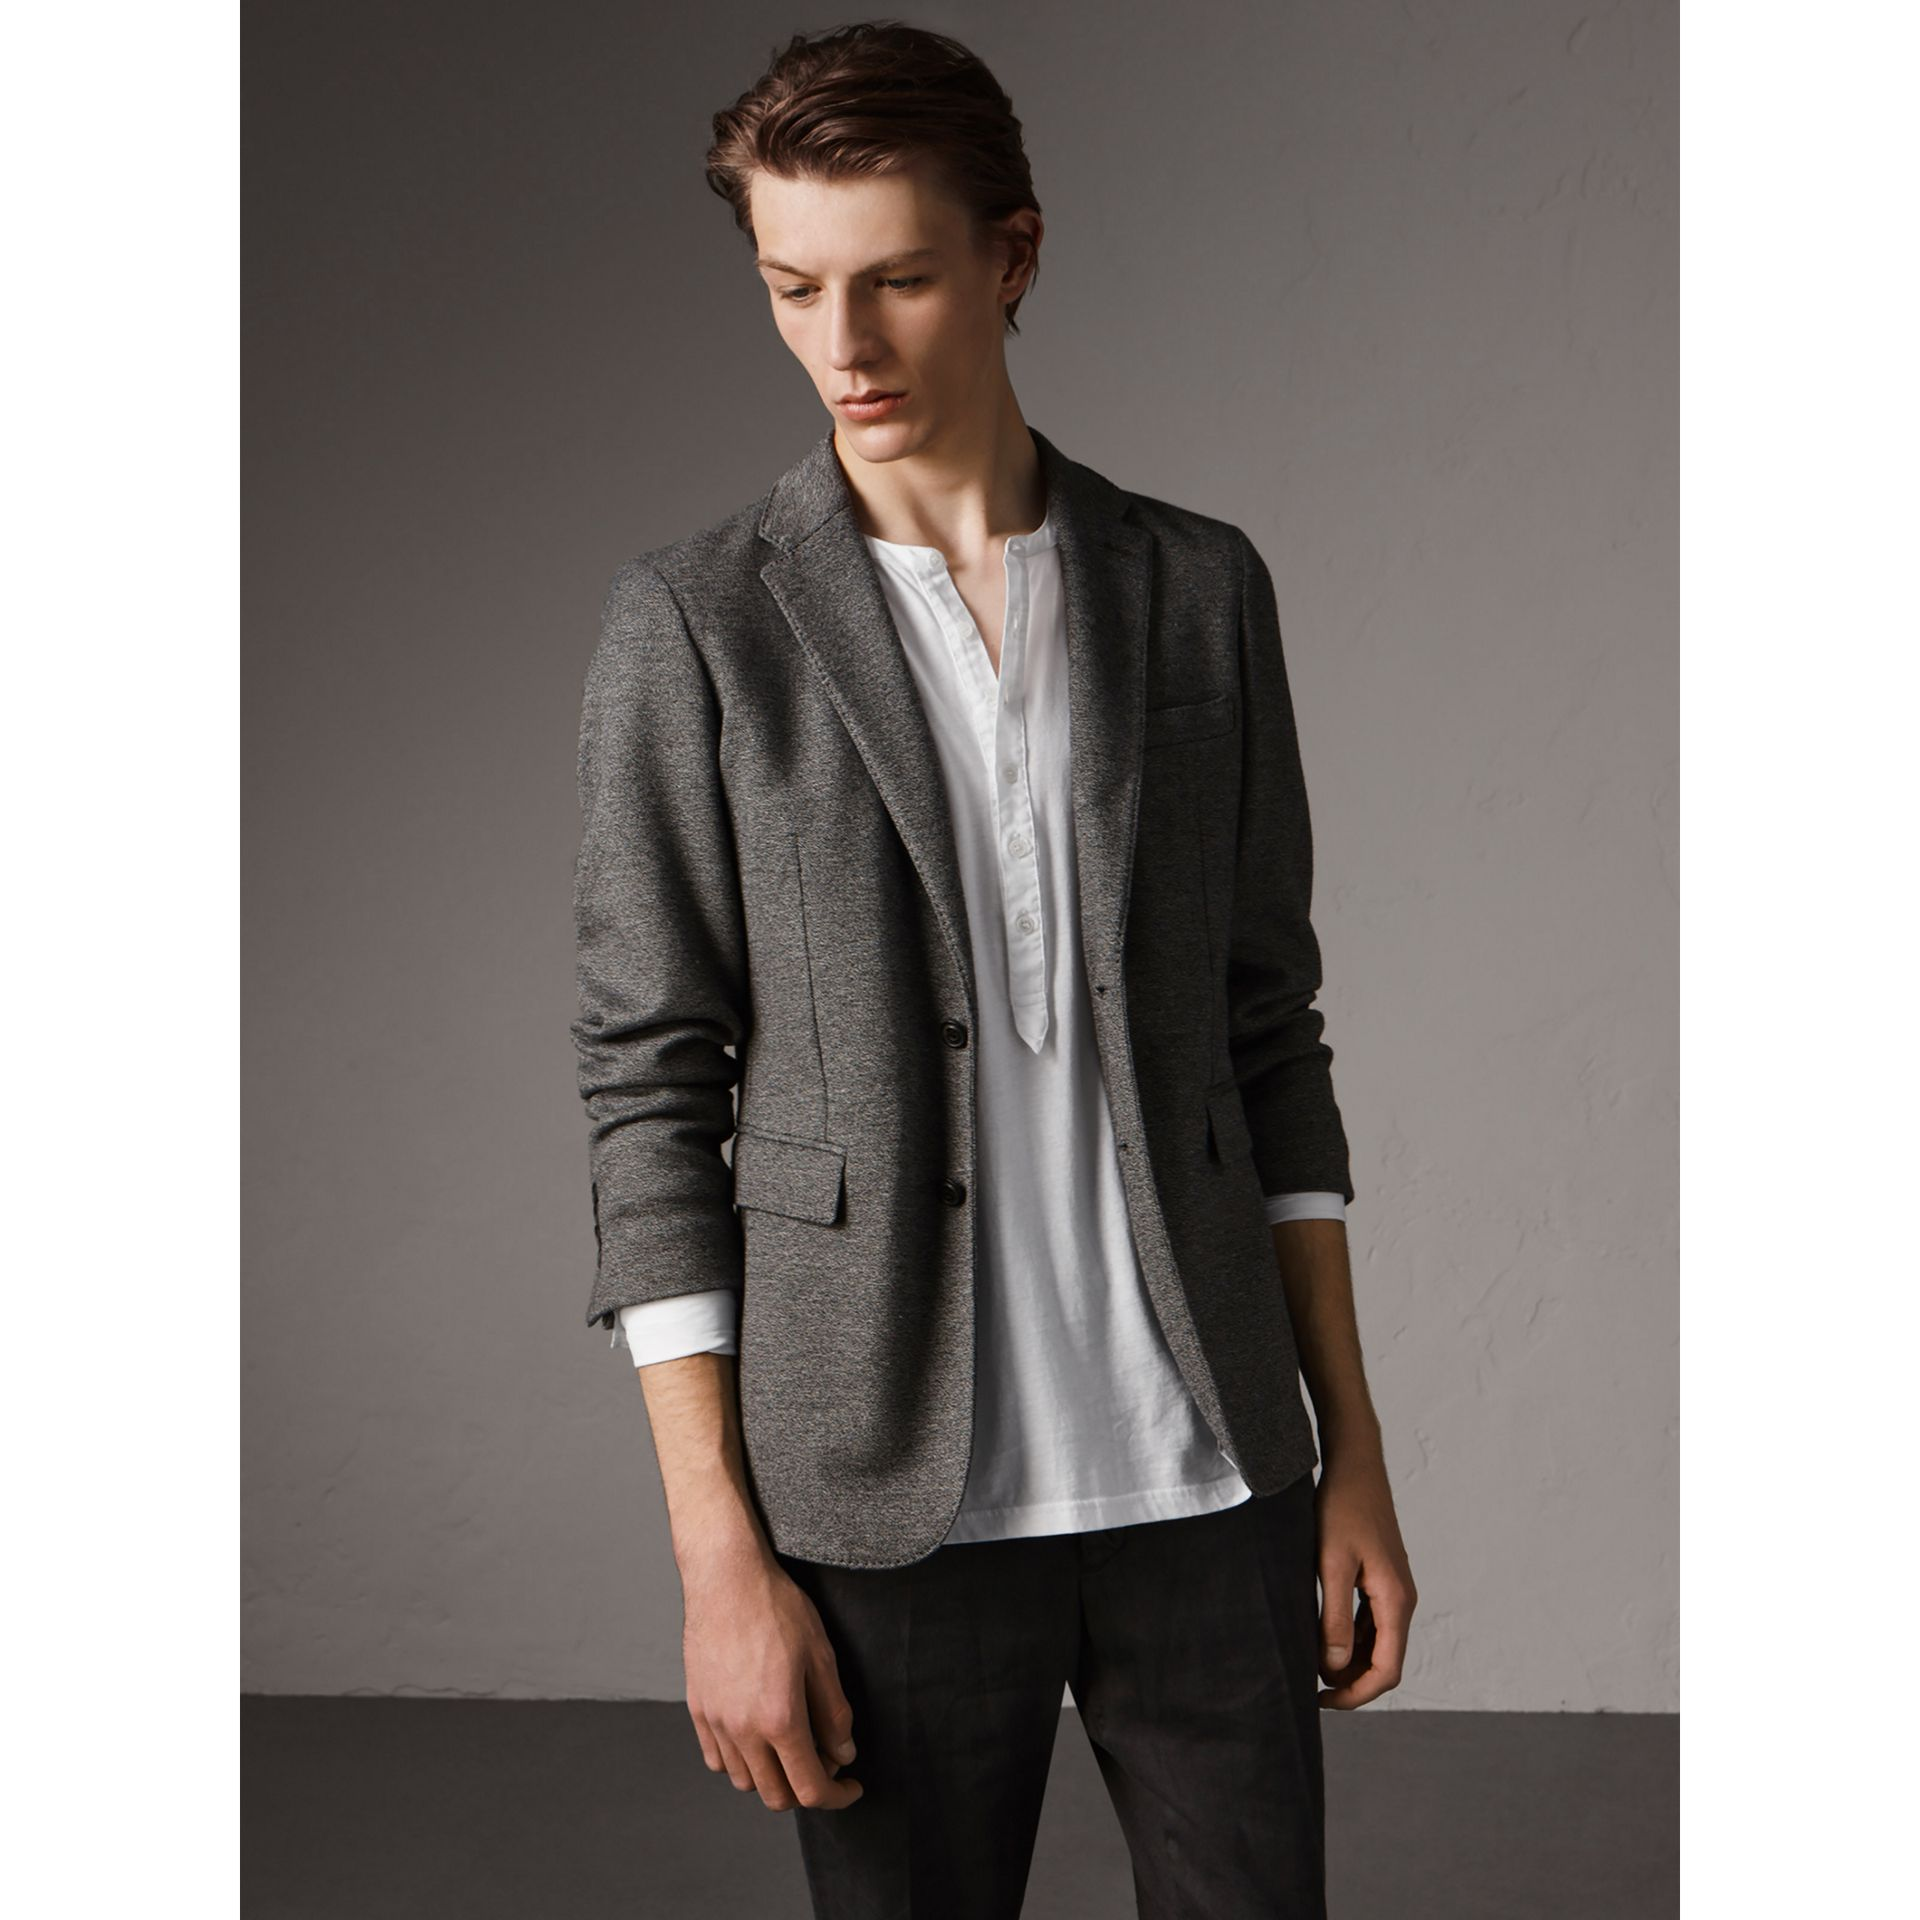 Soho Fit Cotton Wool Jersey Tailored Jacket in Charcoal Melange - Men | Burberry Hong Kong - gallery image 6